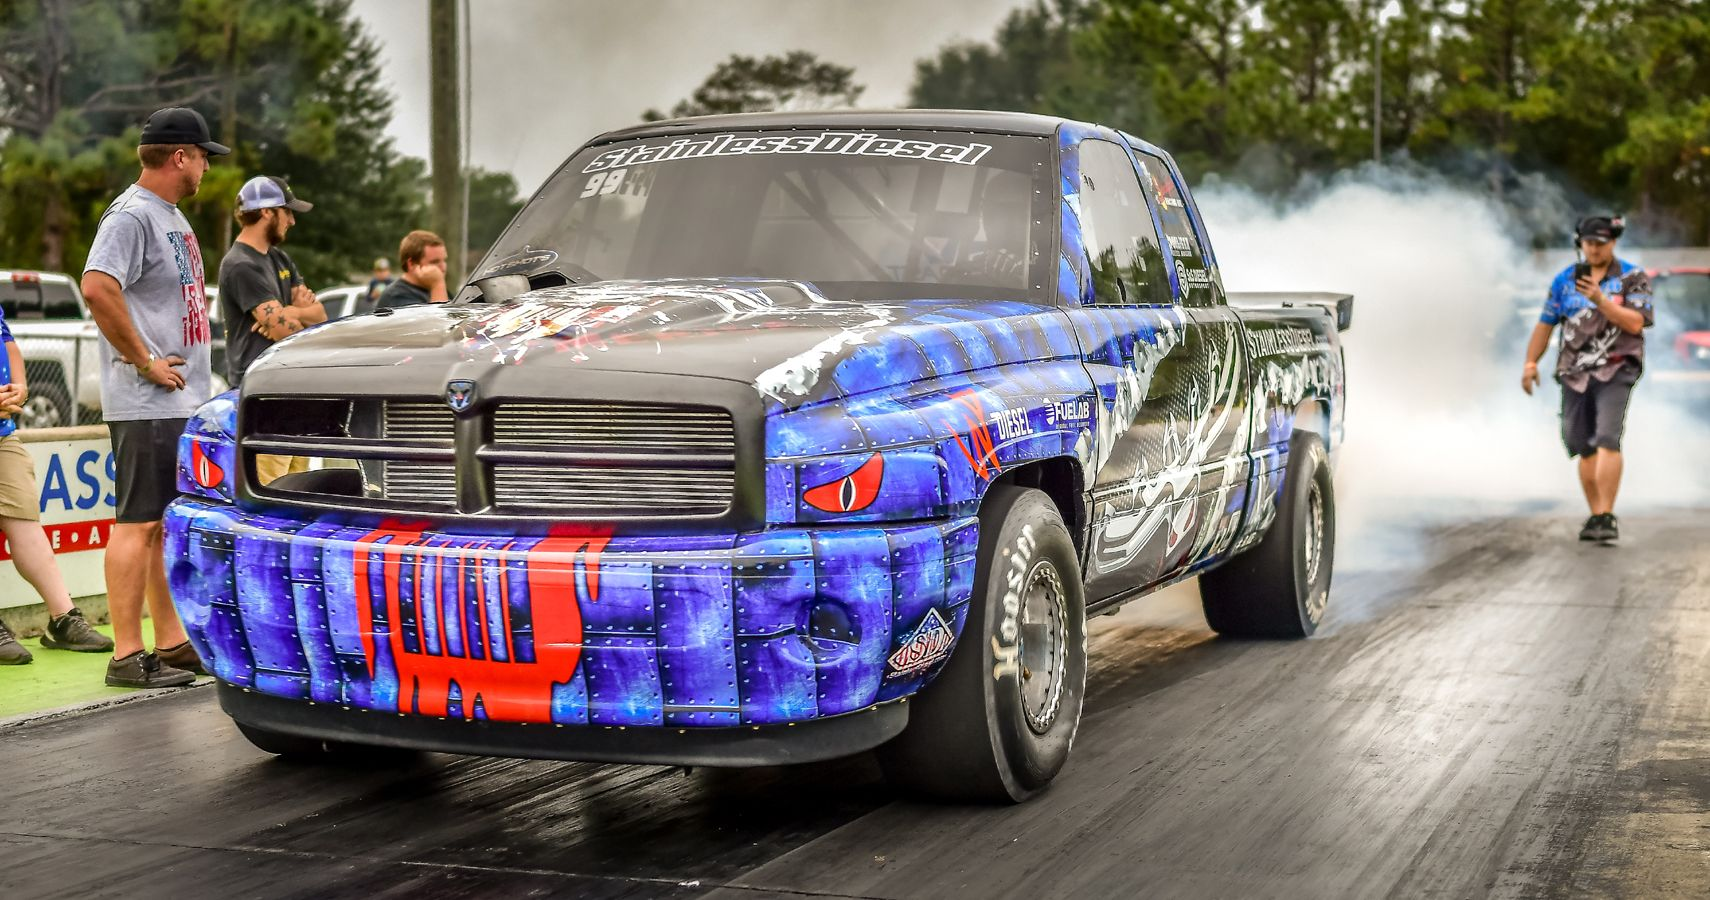 This 2000-HP Stainless Diesel Ram Truck Is Shooting For Another World Speed Record